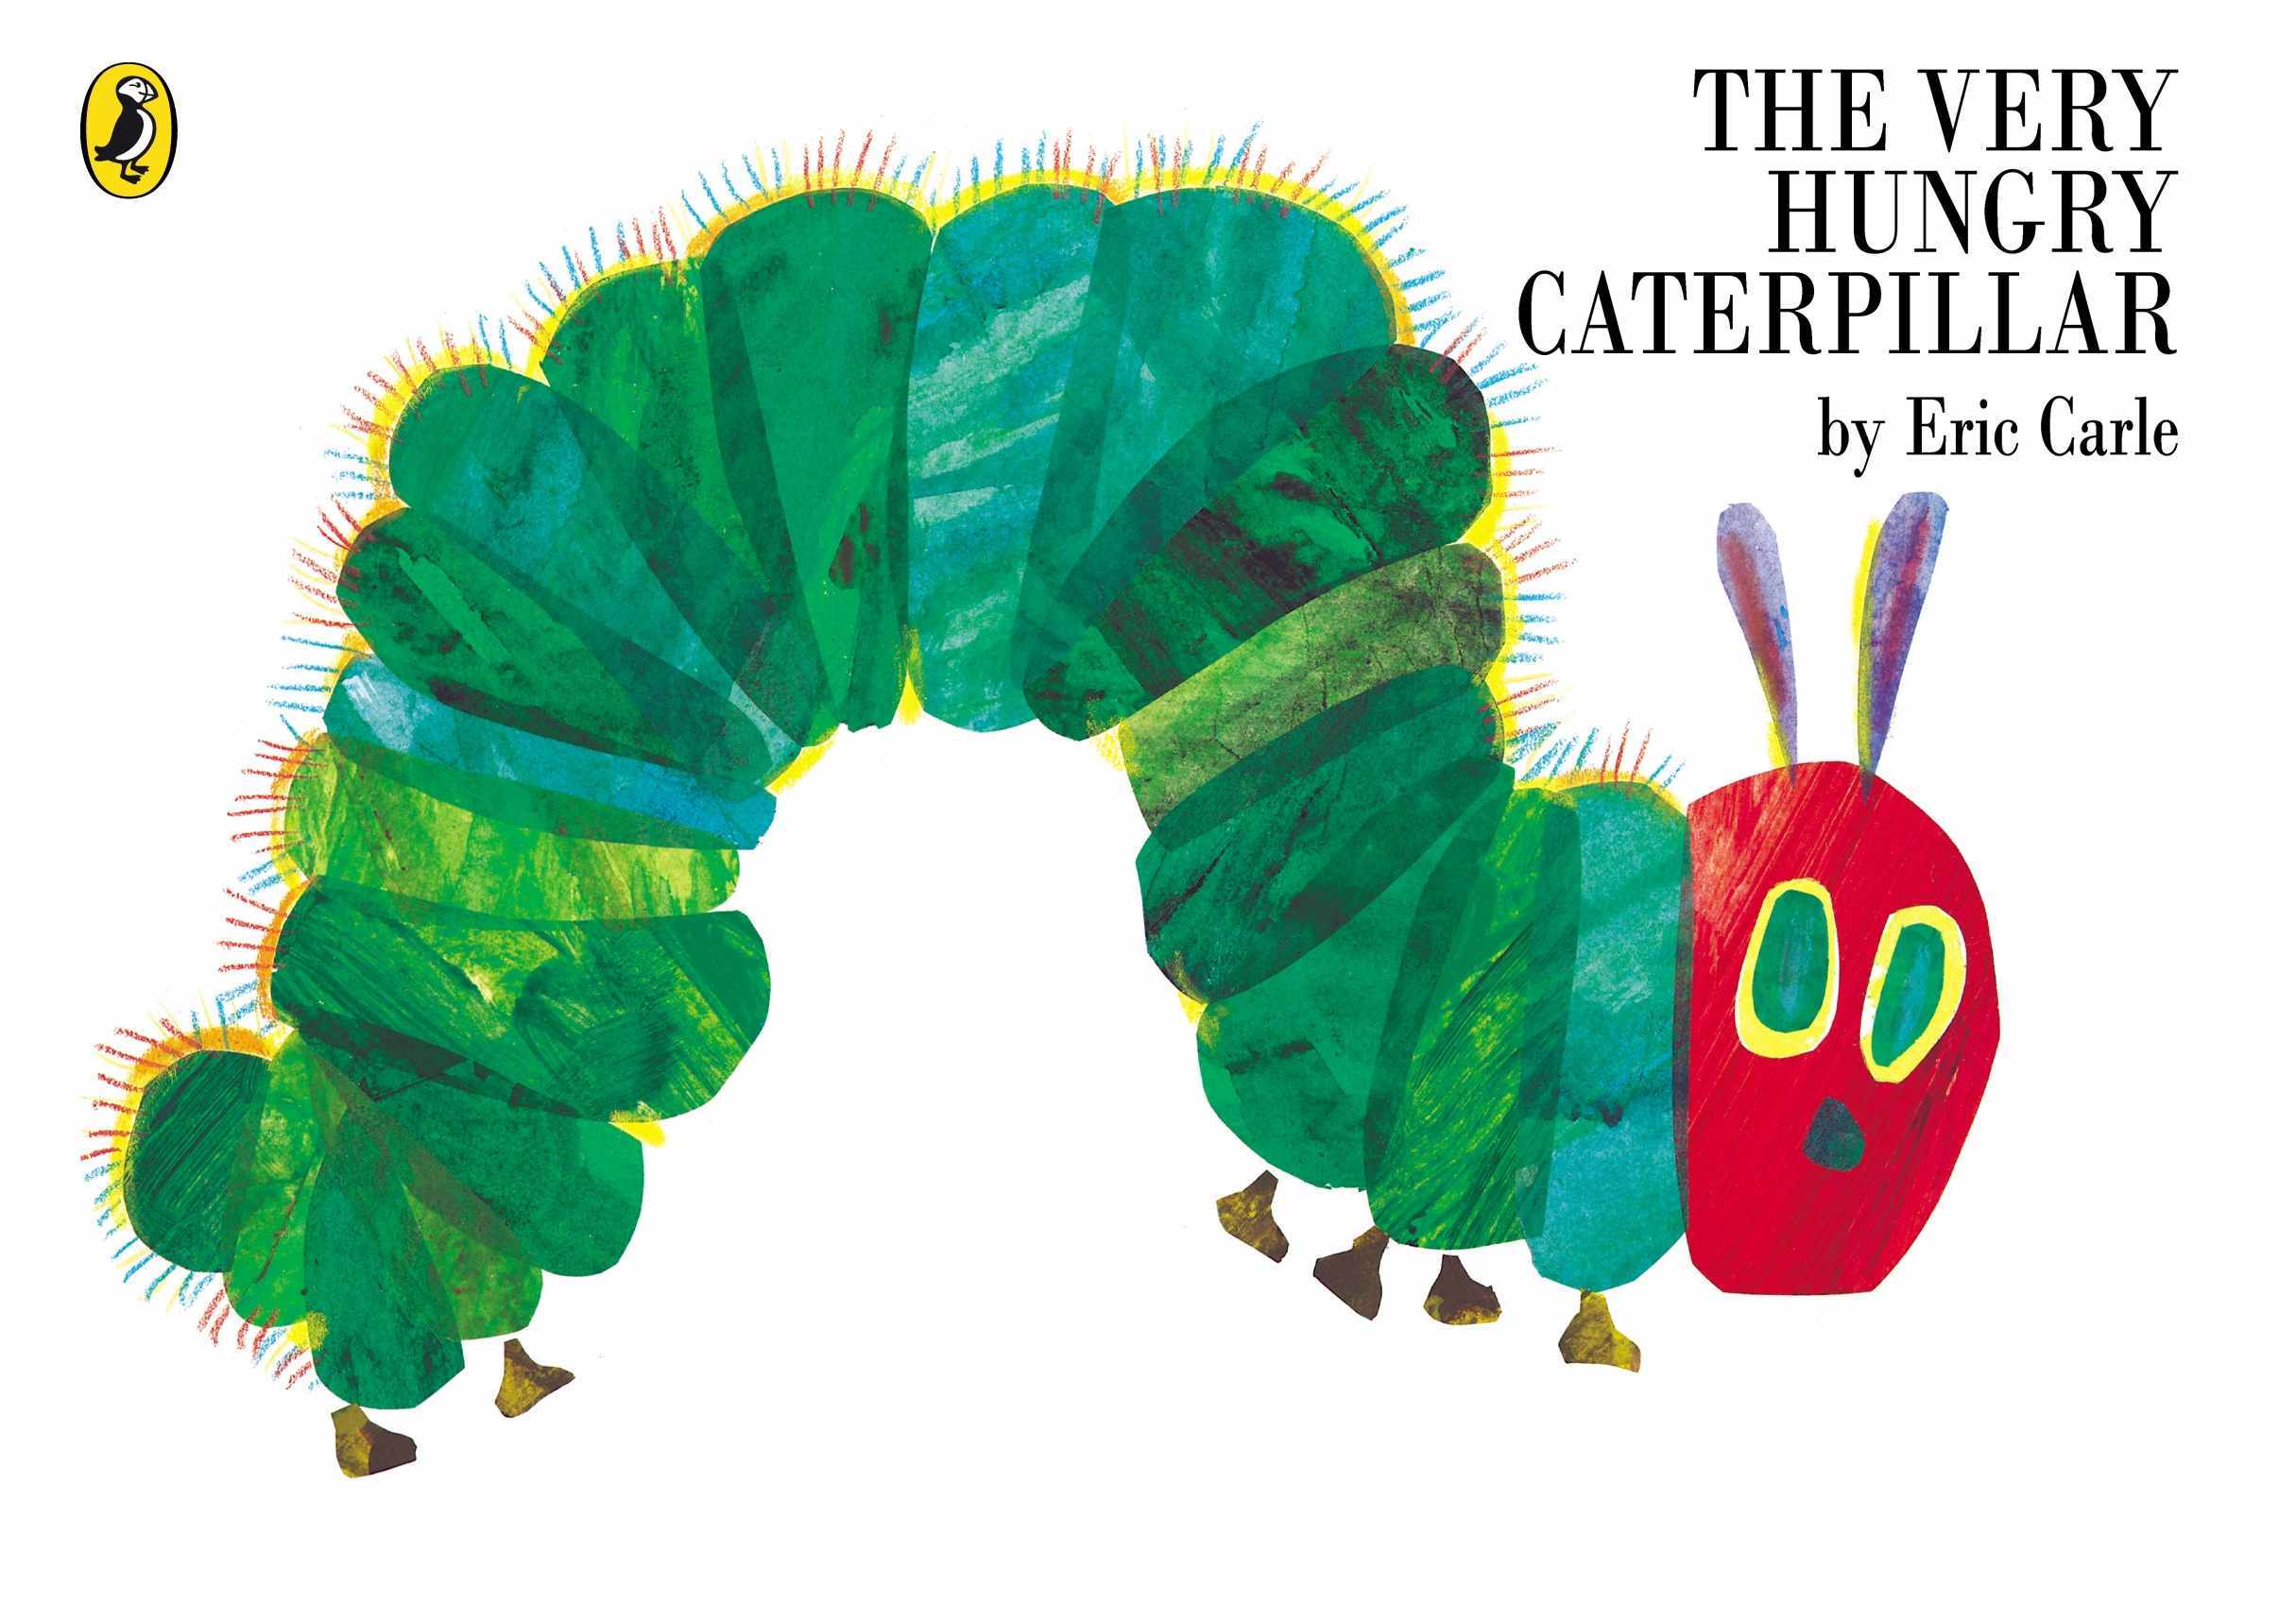 10-best-books-for-1-year-olds_22248